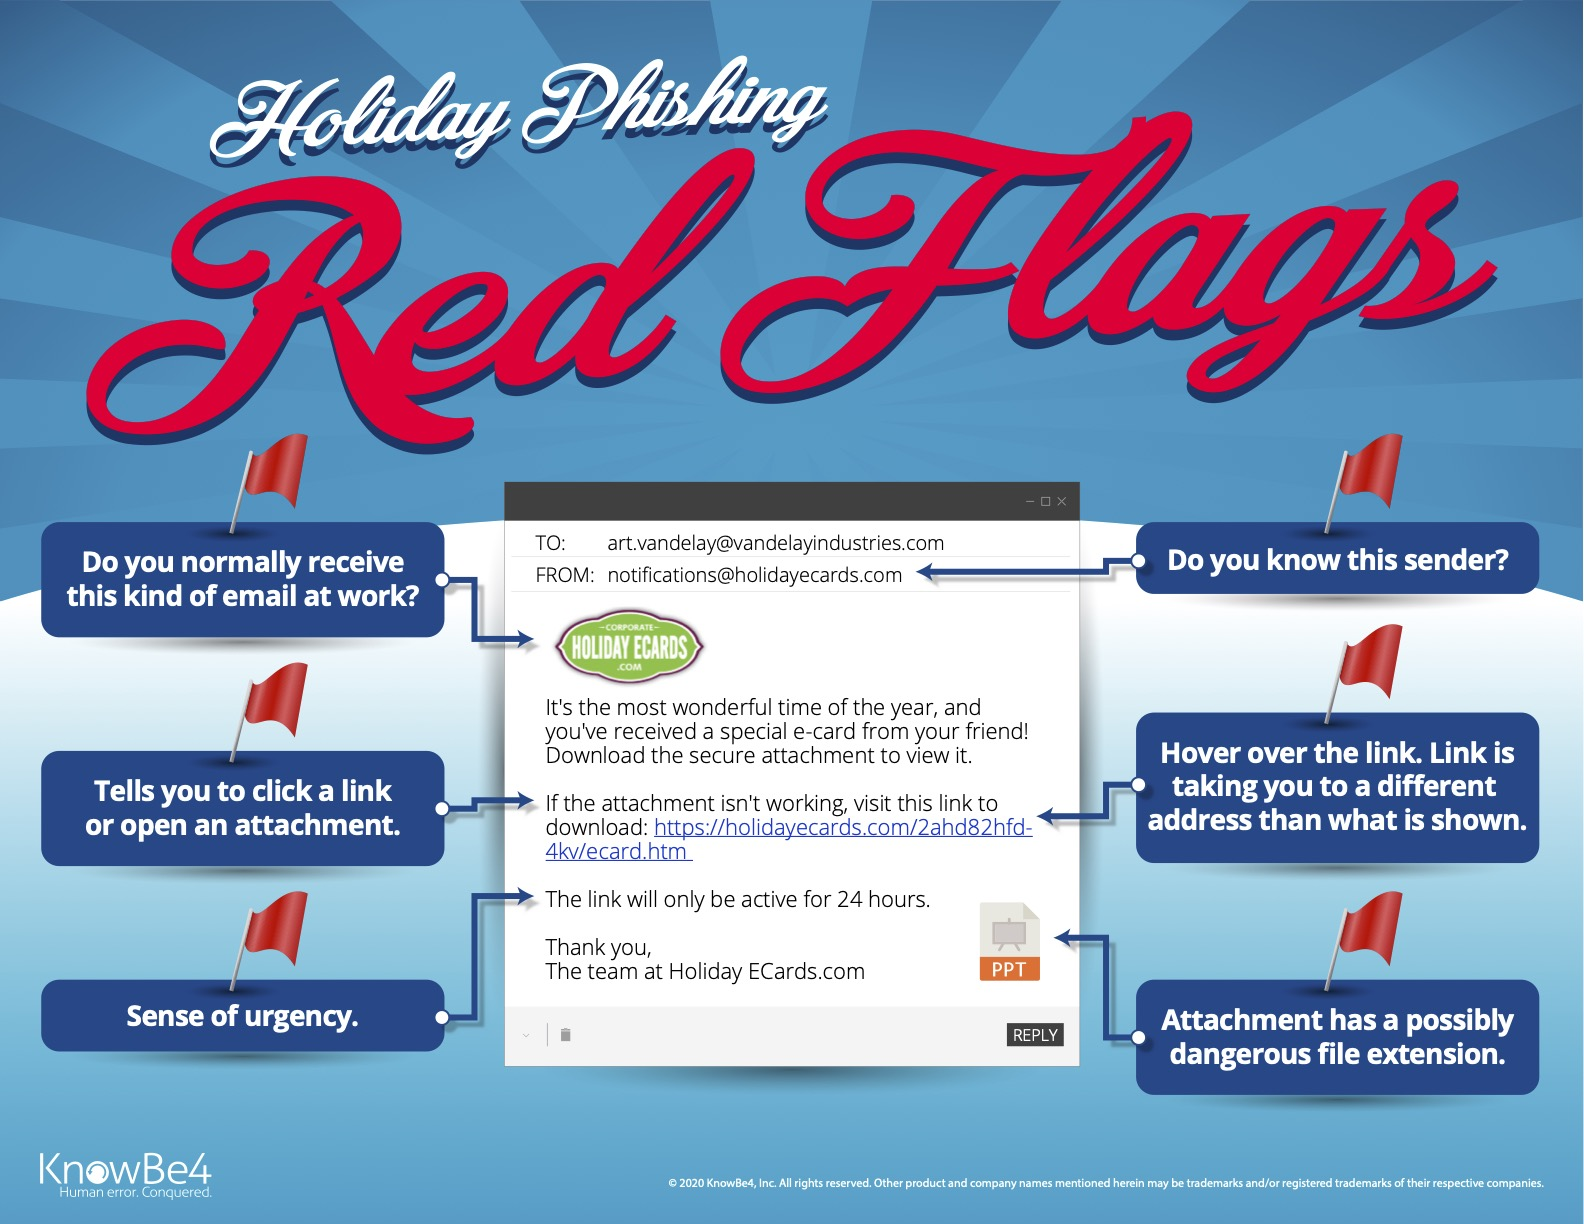 Cybersecurity Tips: Holiday Phishing Red Flags